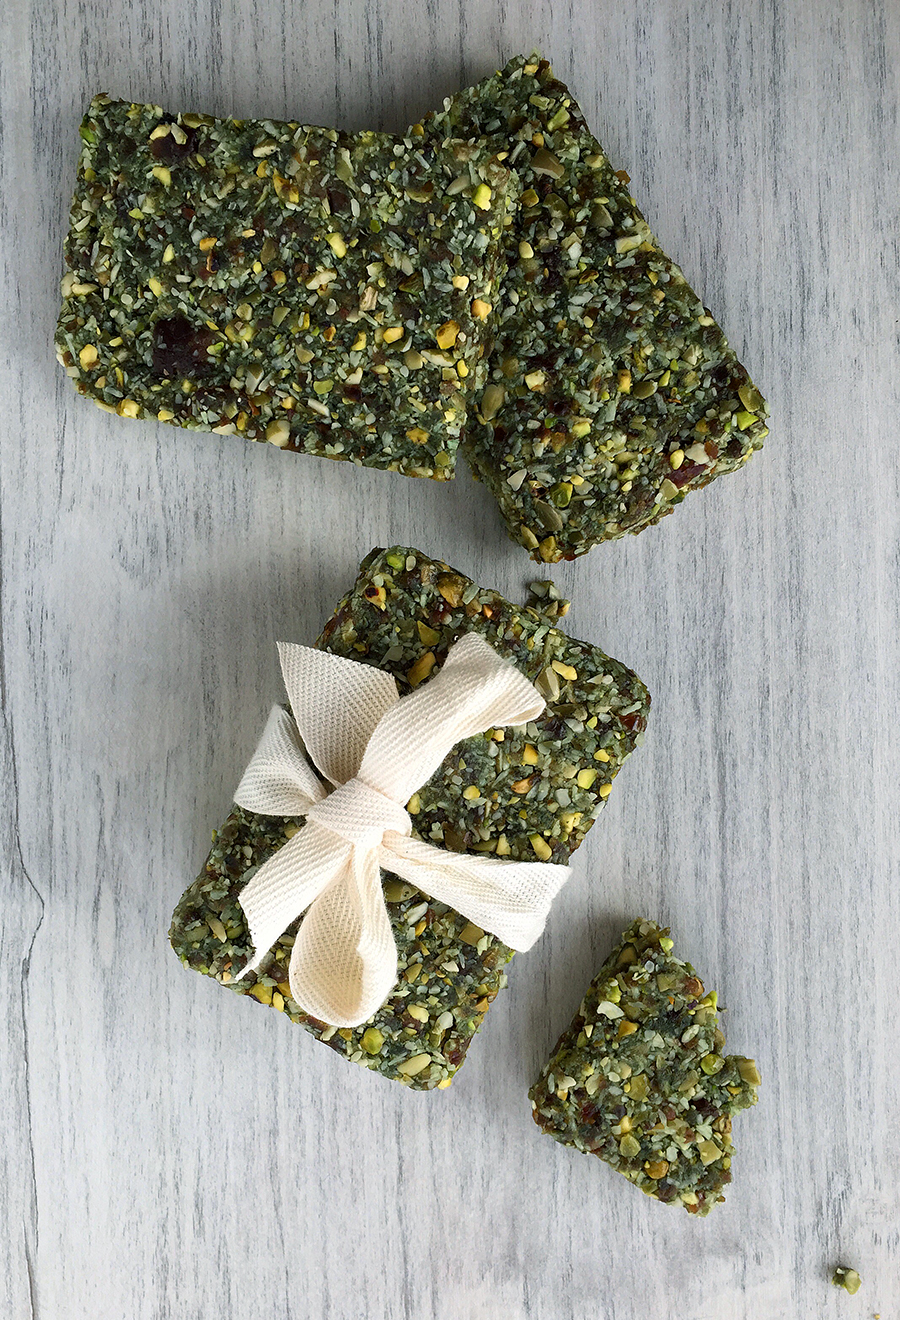 Raw Hemp Algae Bars (grain/dairy/sugar free, paleo, vegan) | Fresh Planet Flavor